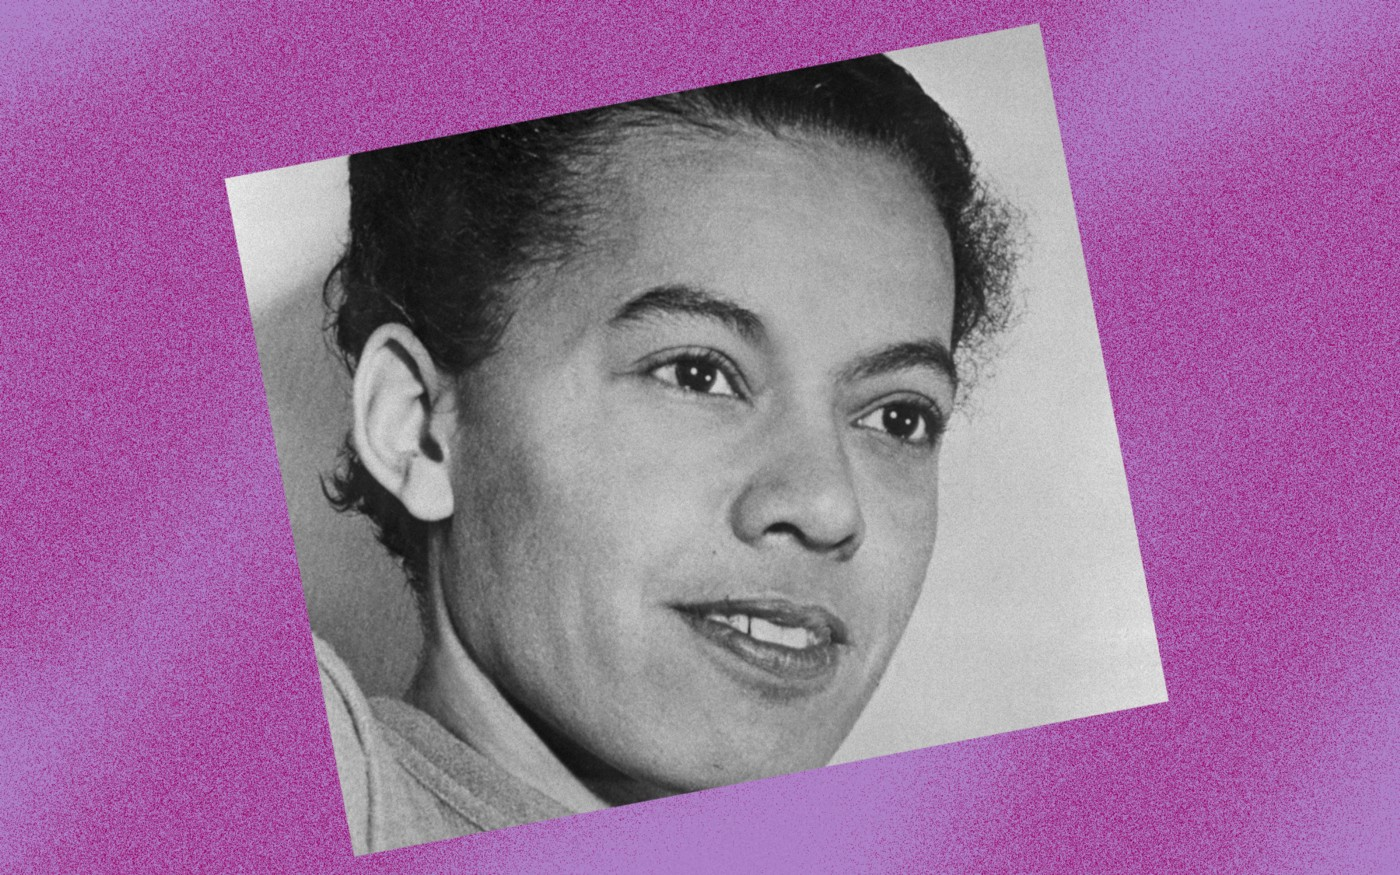 Black and white photo of Pauli Murray against a violet background.